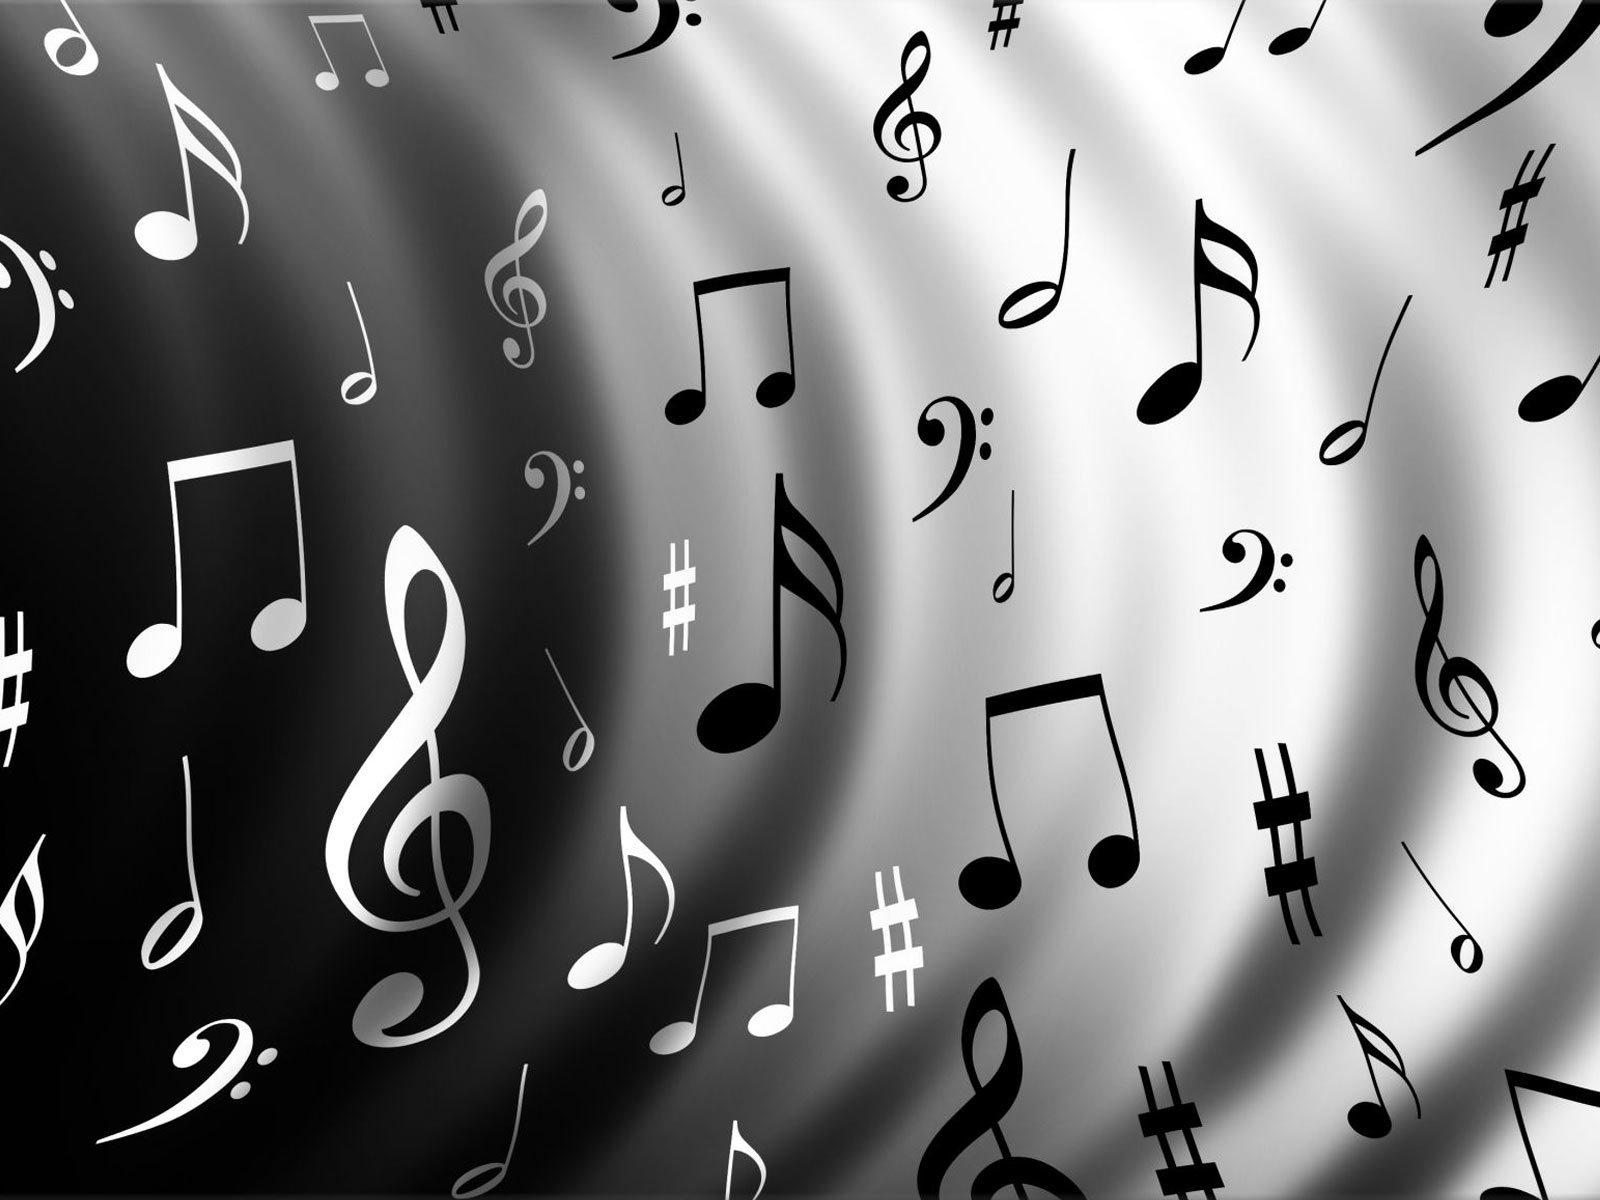 notes music note musical song songs background wallpapers backgrounds musician musica melody piano symbols which cool gd